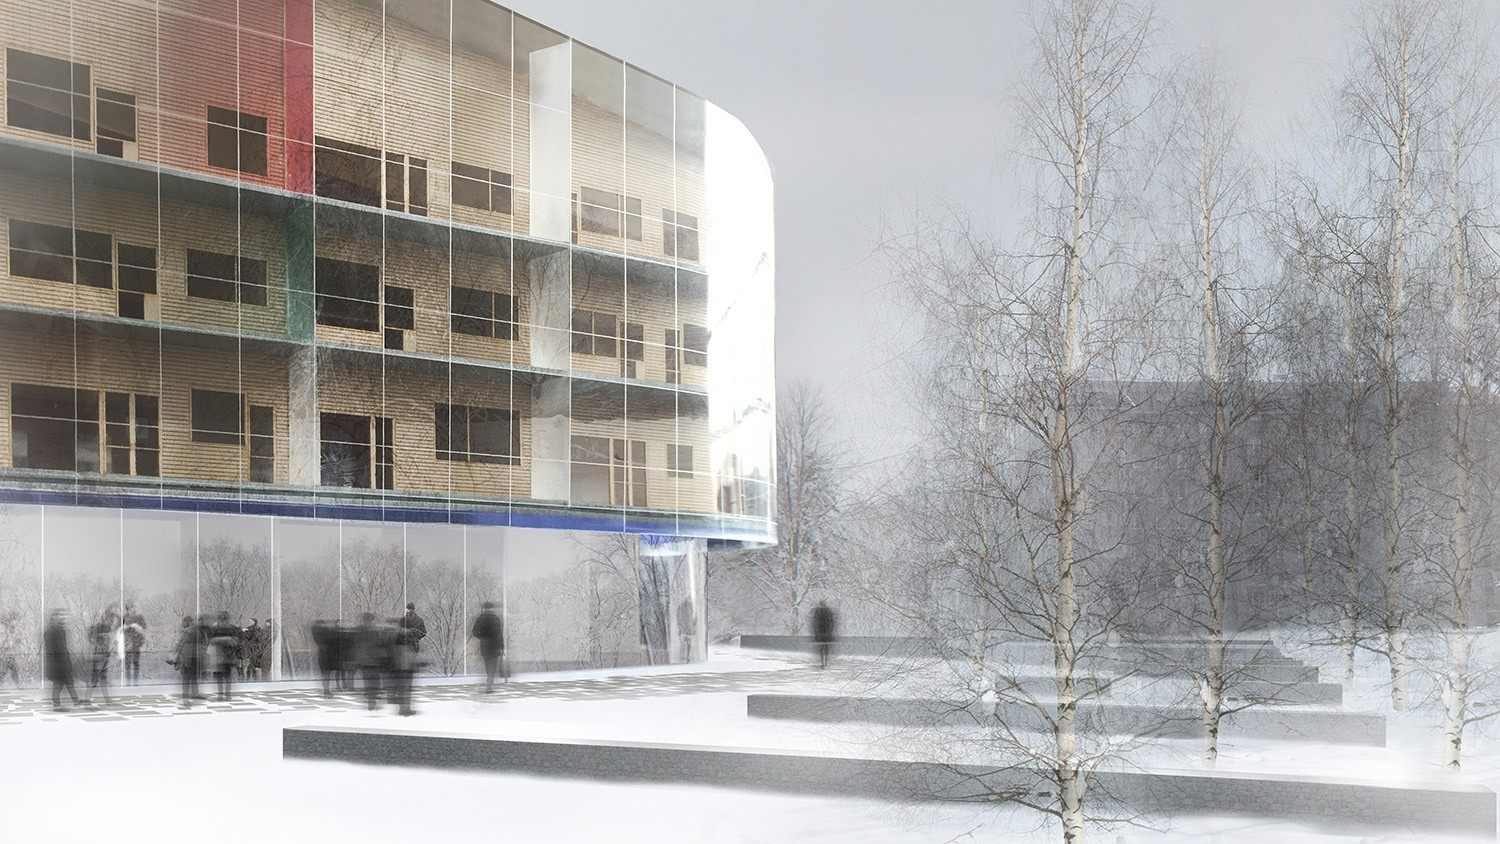 https://s3.us-east-2.amazonaws.com/steven-holl/uploads/projects/project-images/StevenHollArchitects_Meander_02 Snowy Day_WH.jpg